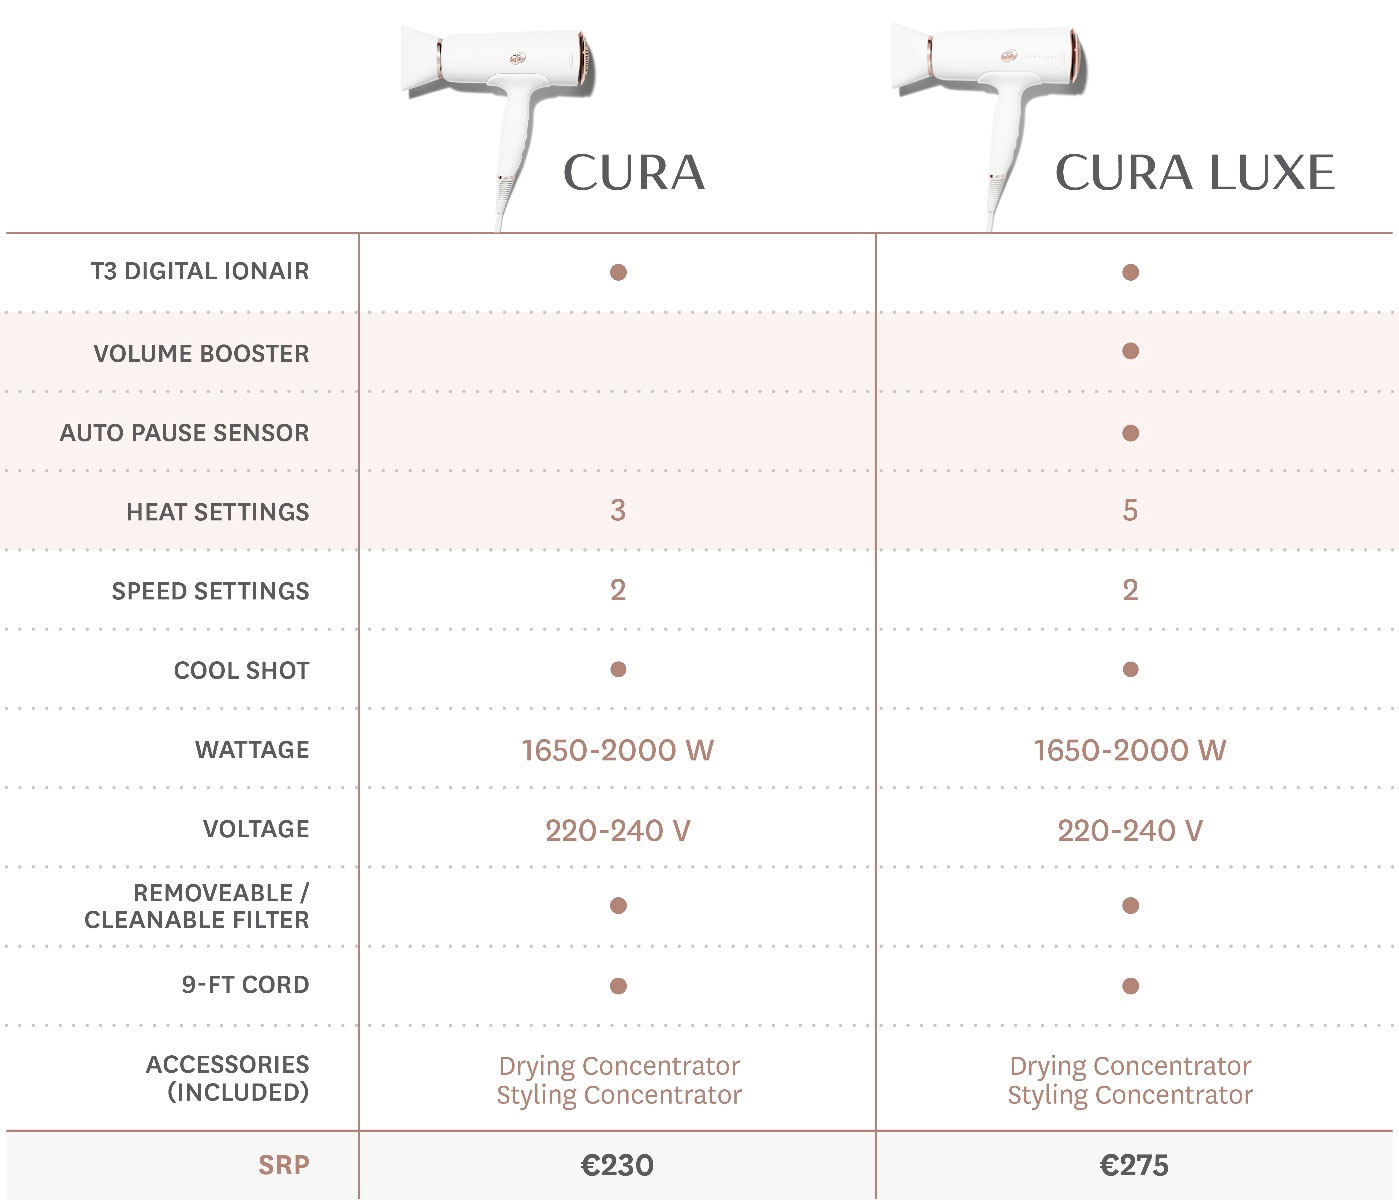 T3 Cura Comparison Table